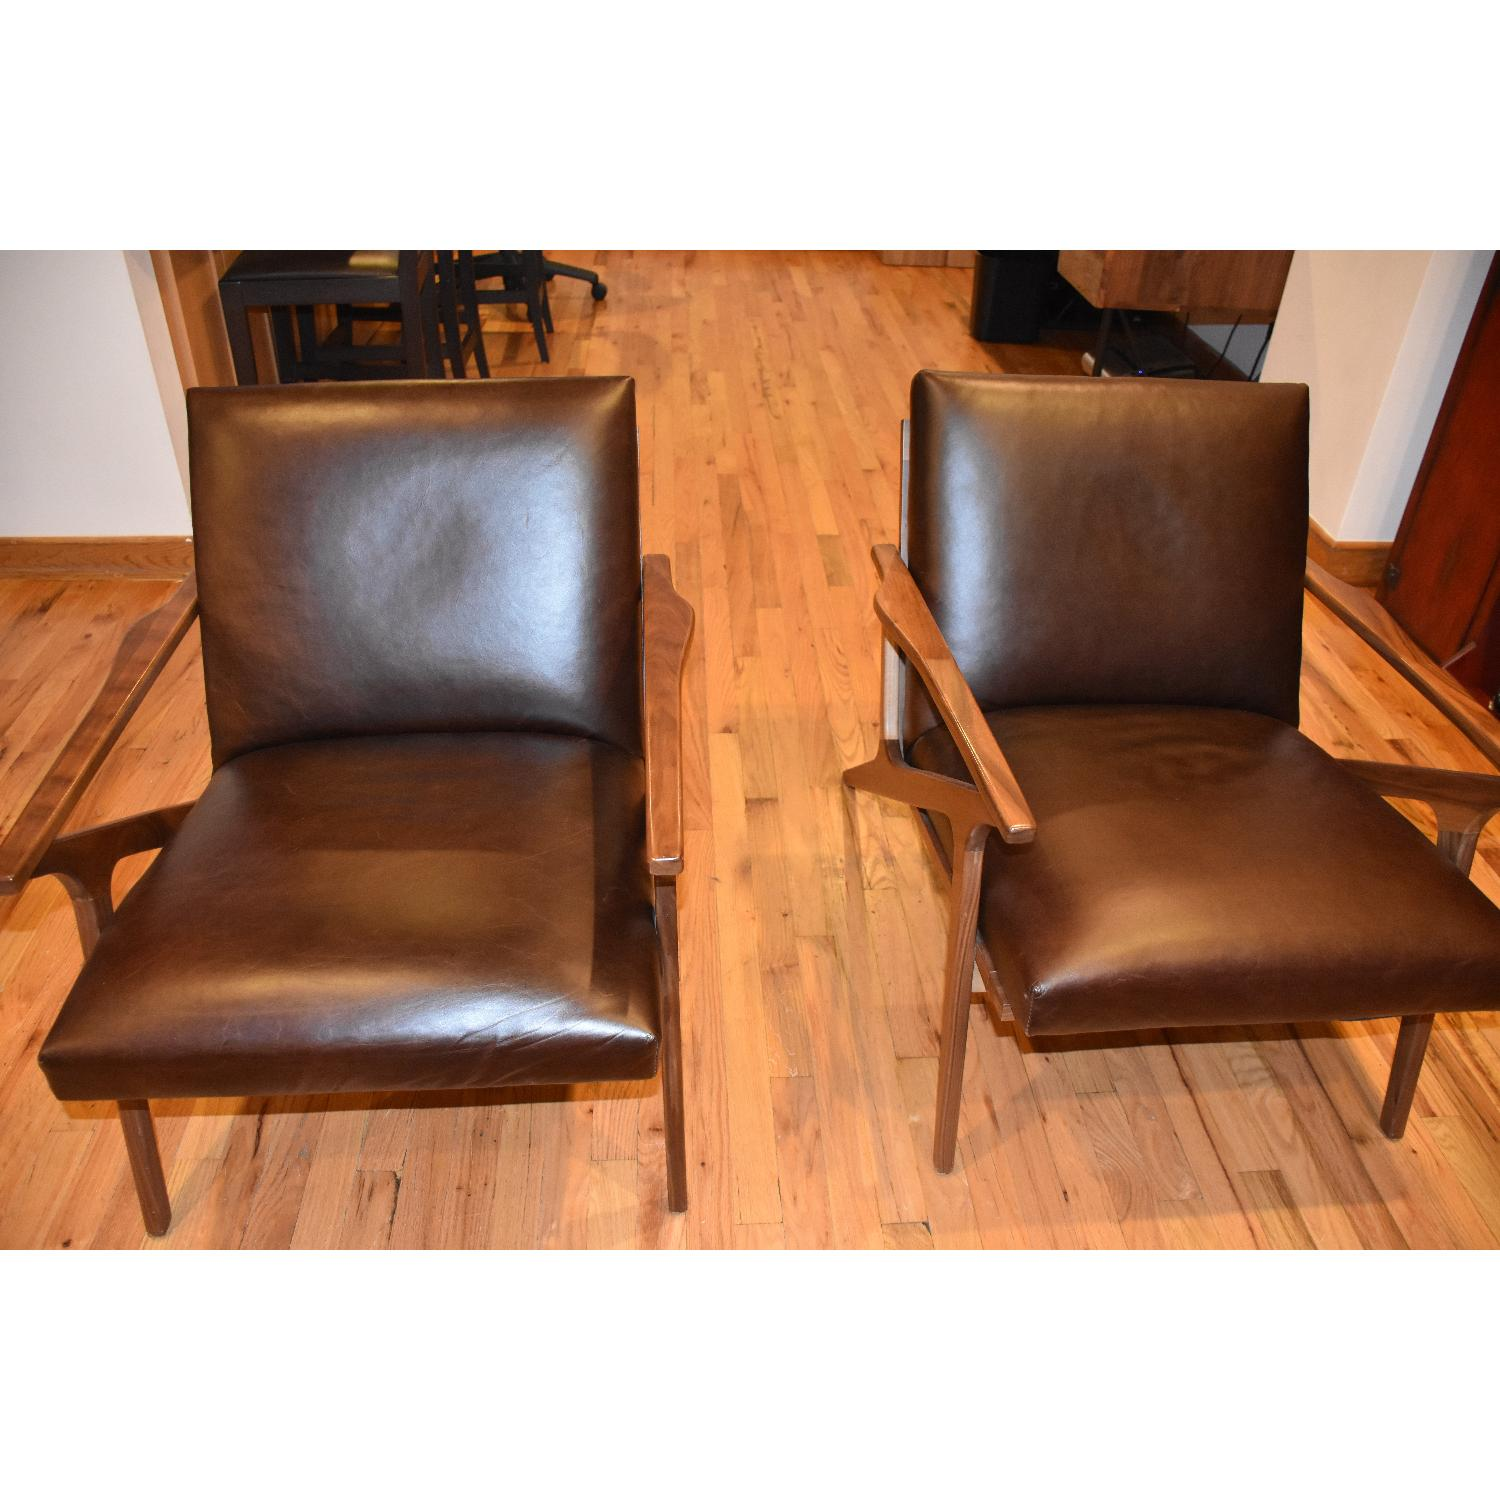 Crate & Barrel Cavett Leather Chair - image-1